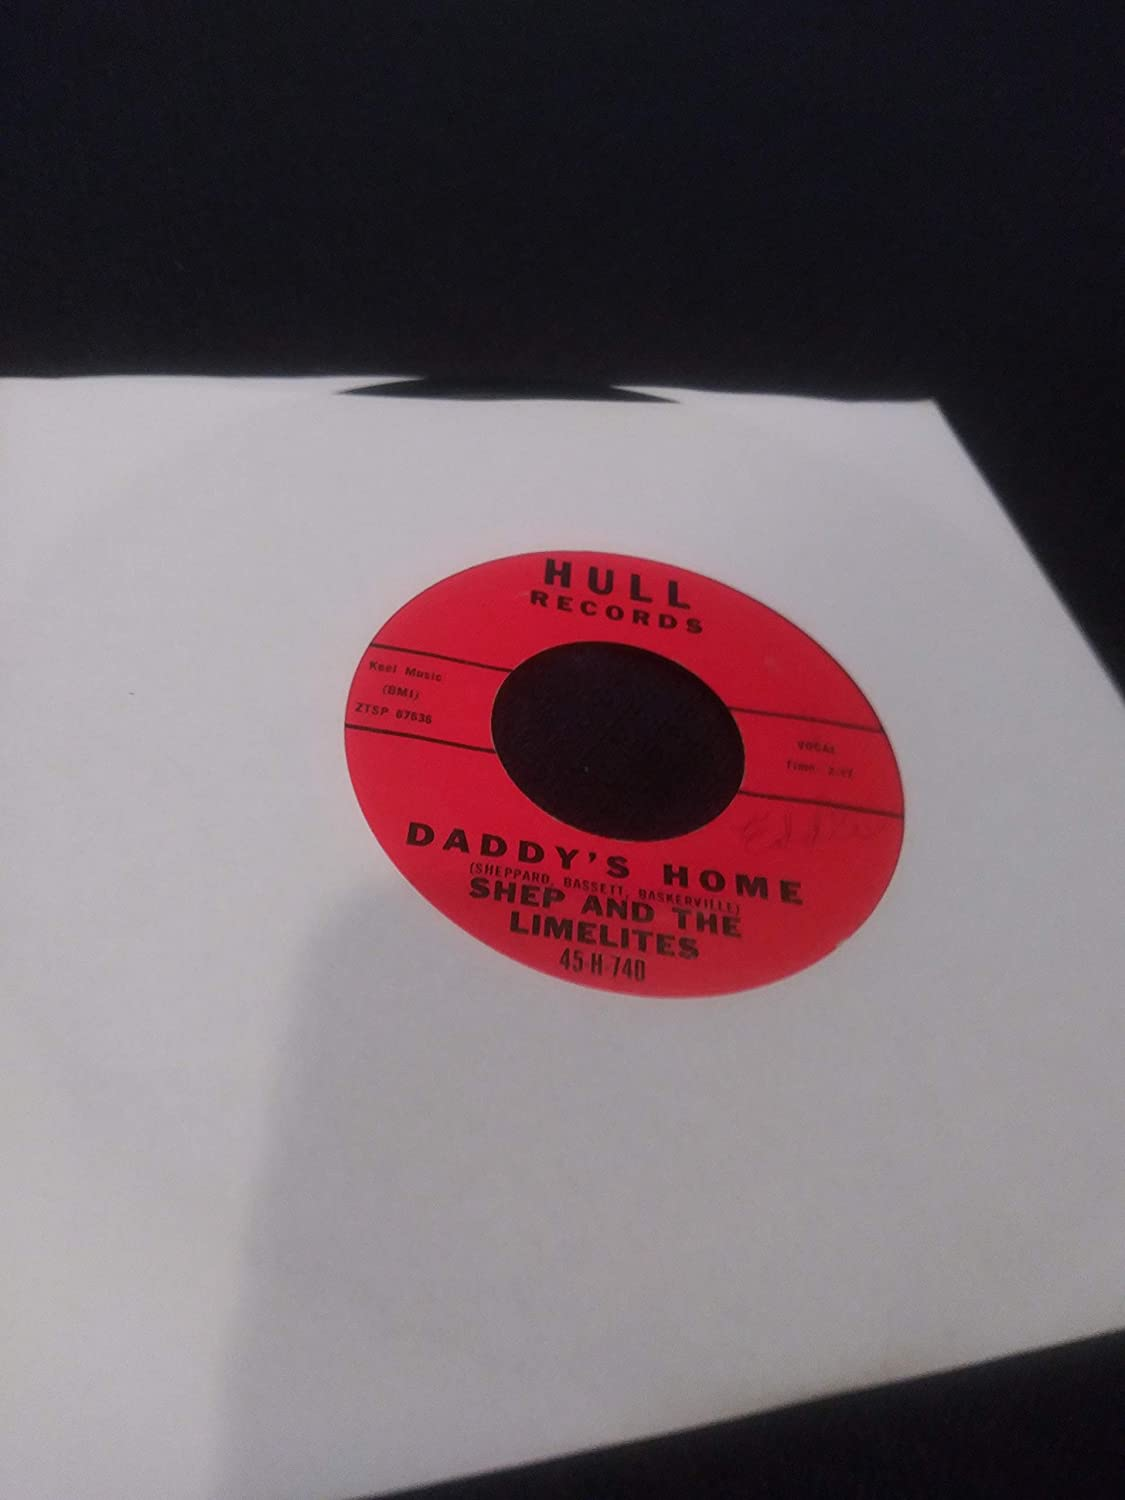 """Daddy's Home / This I Know VINYL 7"""" 45 – Hull Records – DB 841 / DB 842"""